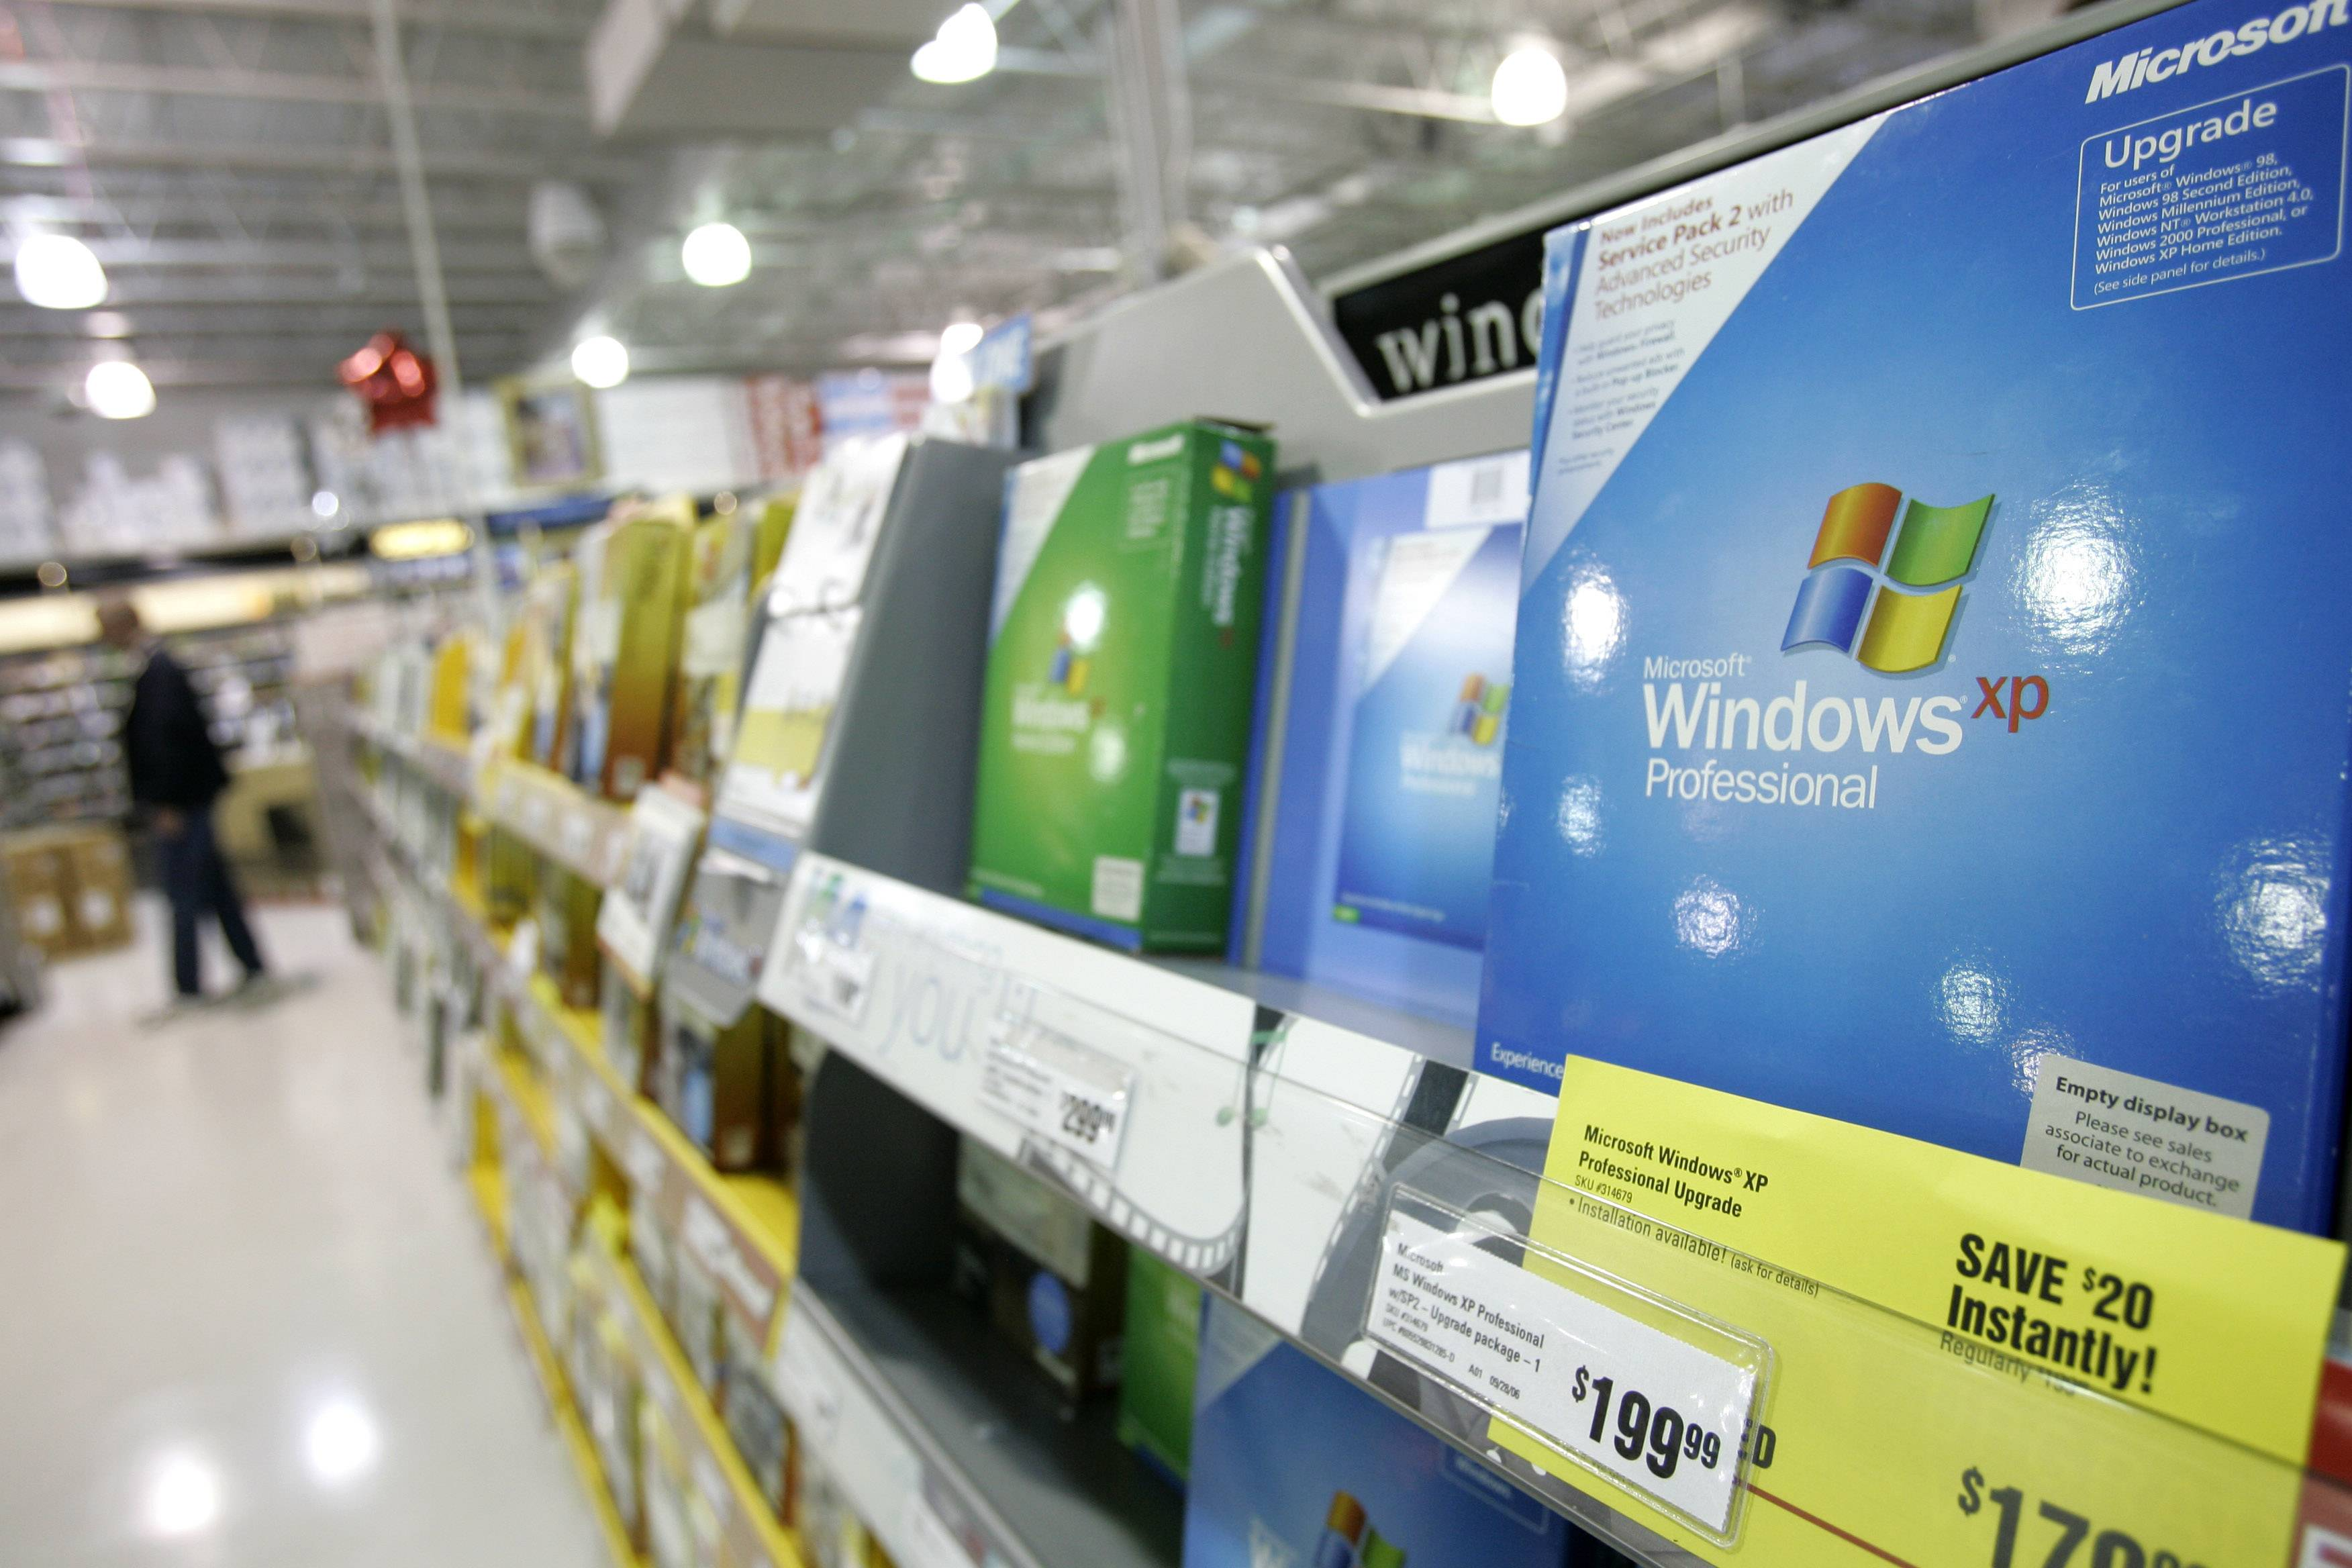 Microsoft will end support for its still popular Windows XP. With an estimated 30 percent of businesses and consumers still using the 12-year-old operating system, the move could put everything from the data of major financial institutions to the identities of everyday people in danger if they don't find a way to upgrade soon.